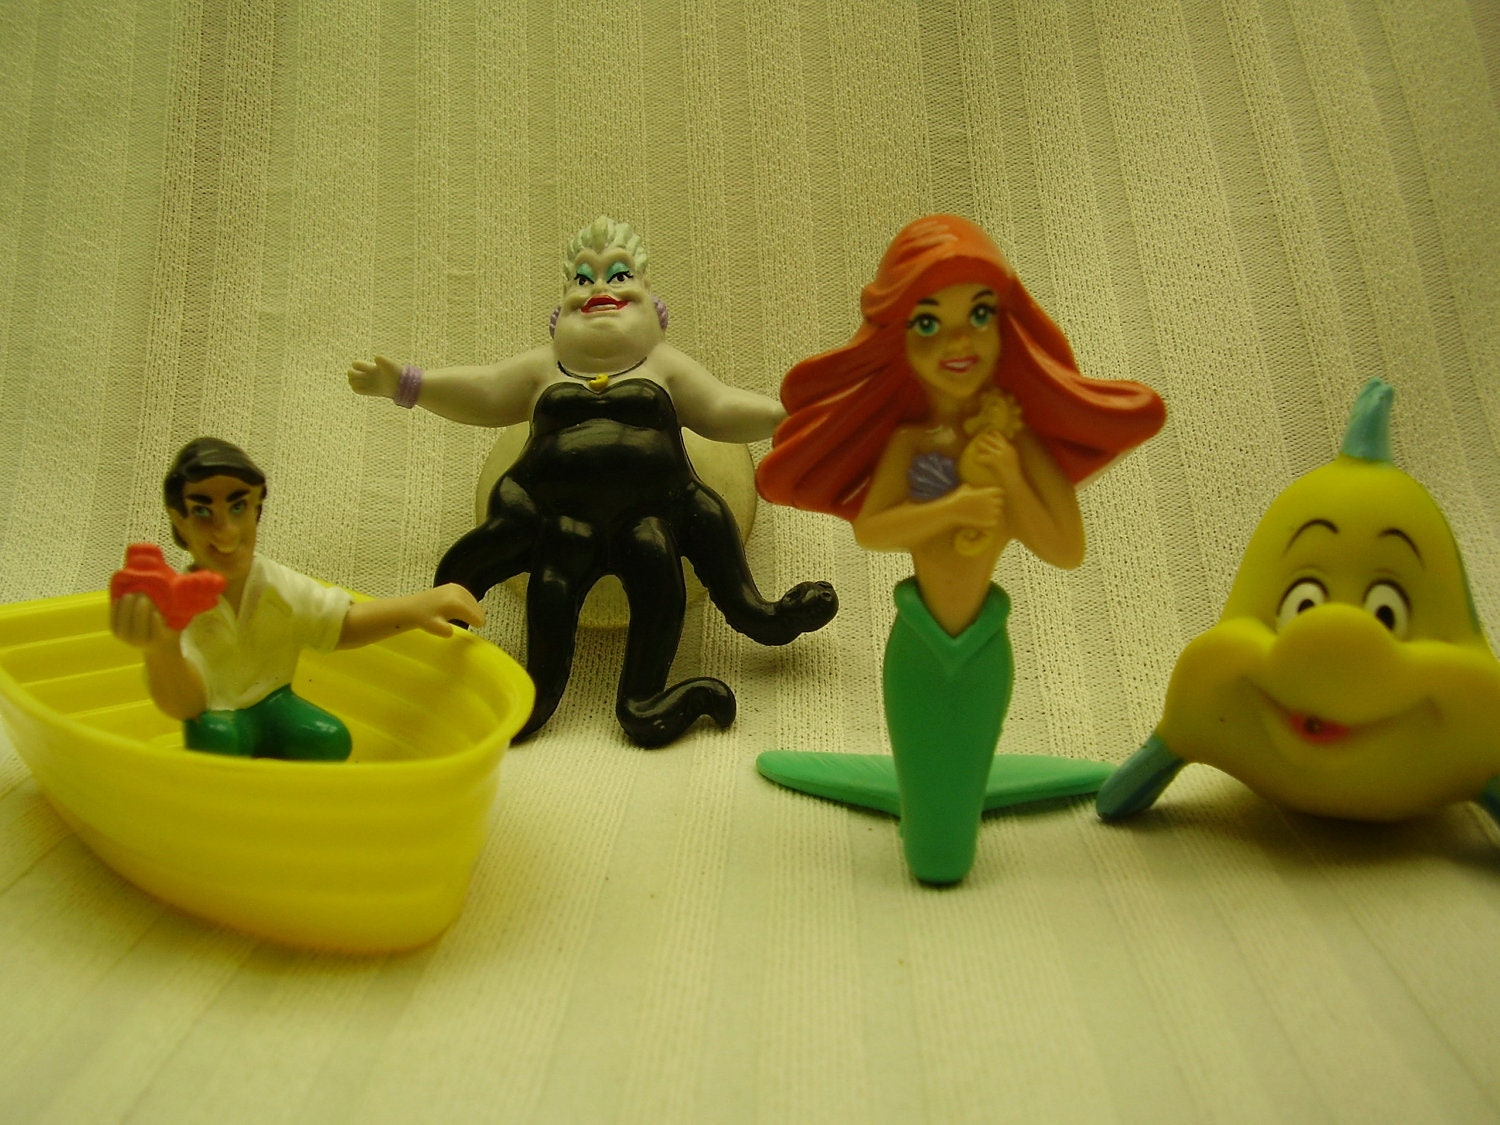 meal little happy toys mcdonalds mermaid Meal Happy Mermaid McDonalds complete Disney set 1989 Little